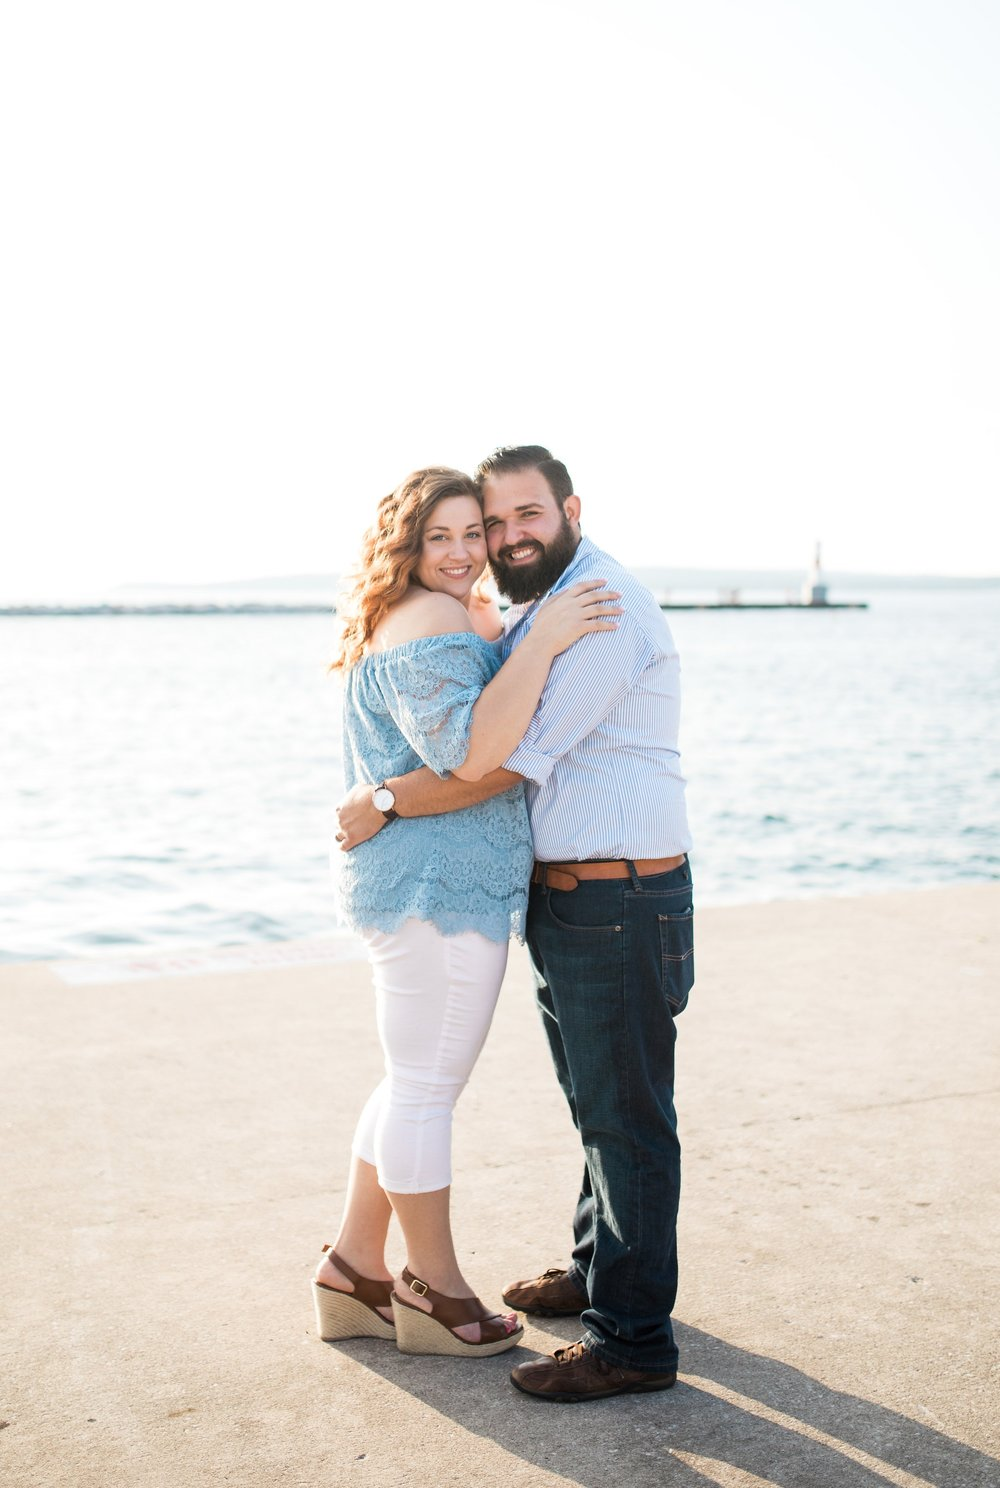 Hey there! - We're Jeannie and Jesse Lytle. Newlyweds, wanna-be chefs, and photographers! Add in a little bit of Netflix binging and an obsession with tacos and that pretty much sums us up!